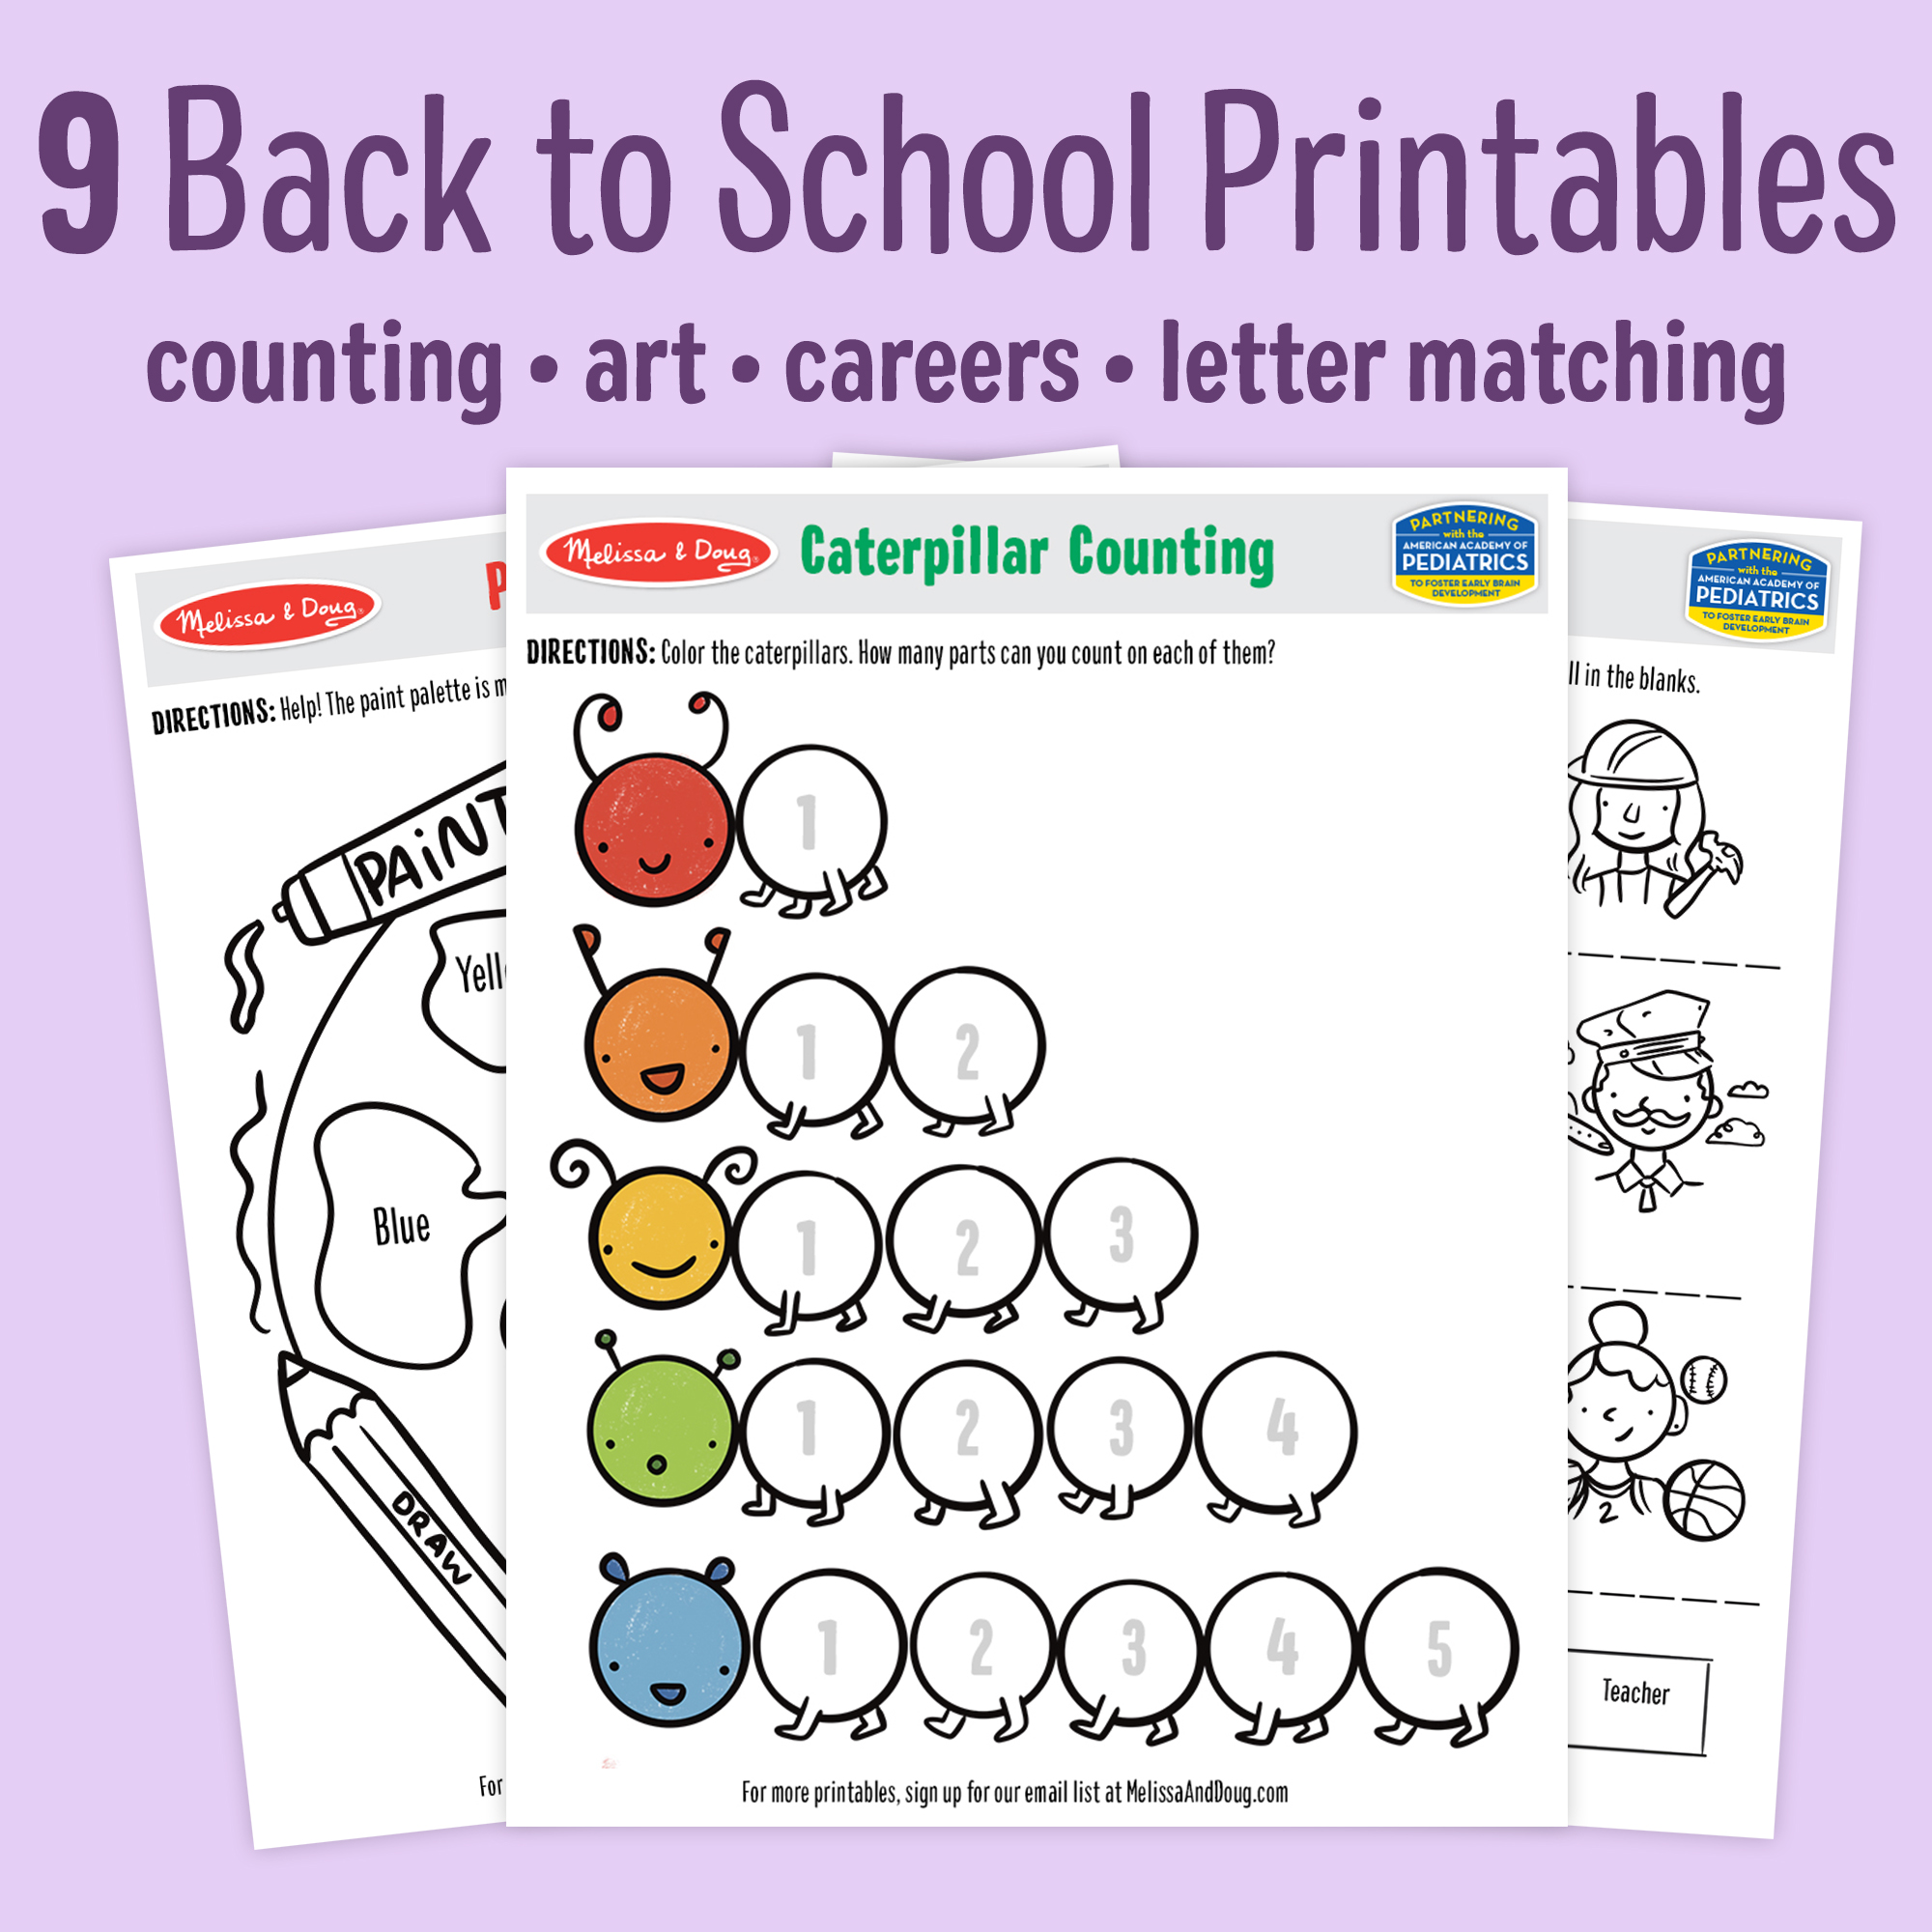 9 Free Back to School Printables for Kids